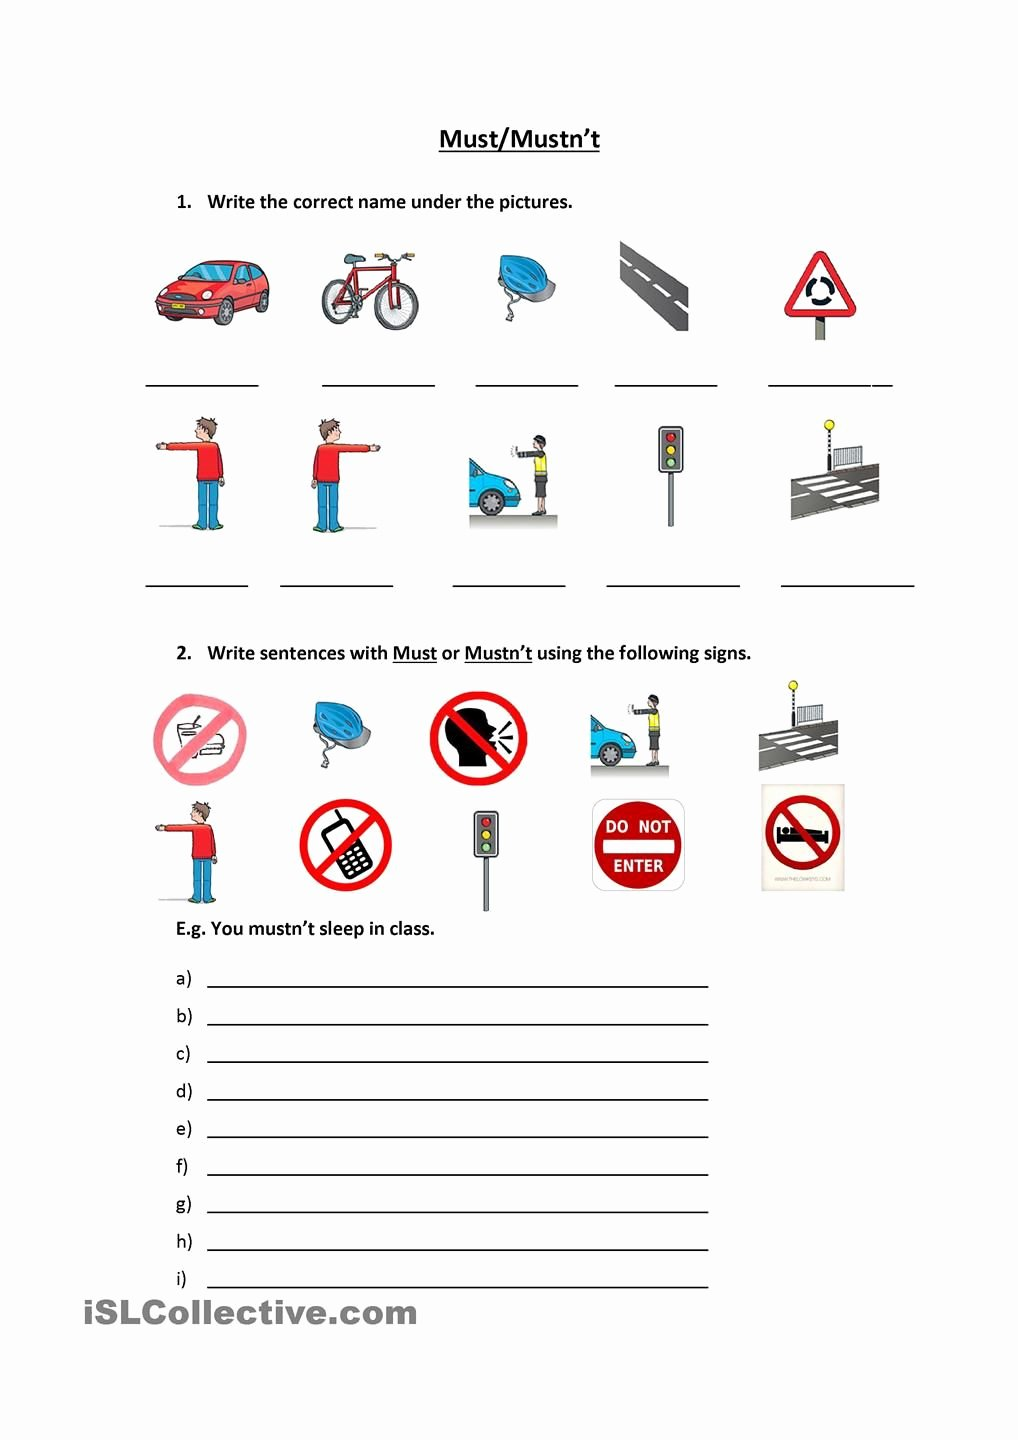 Safety Symbols Worksheet New Signs & Must Mustnt Free Esl Worksheets